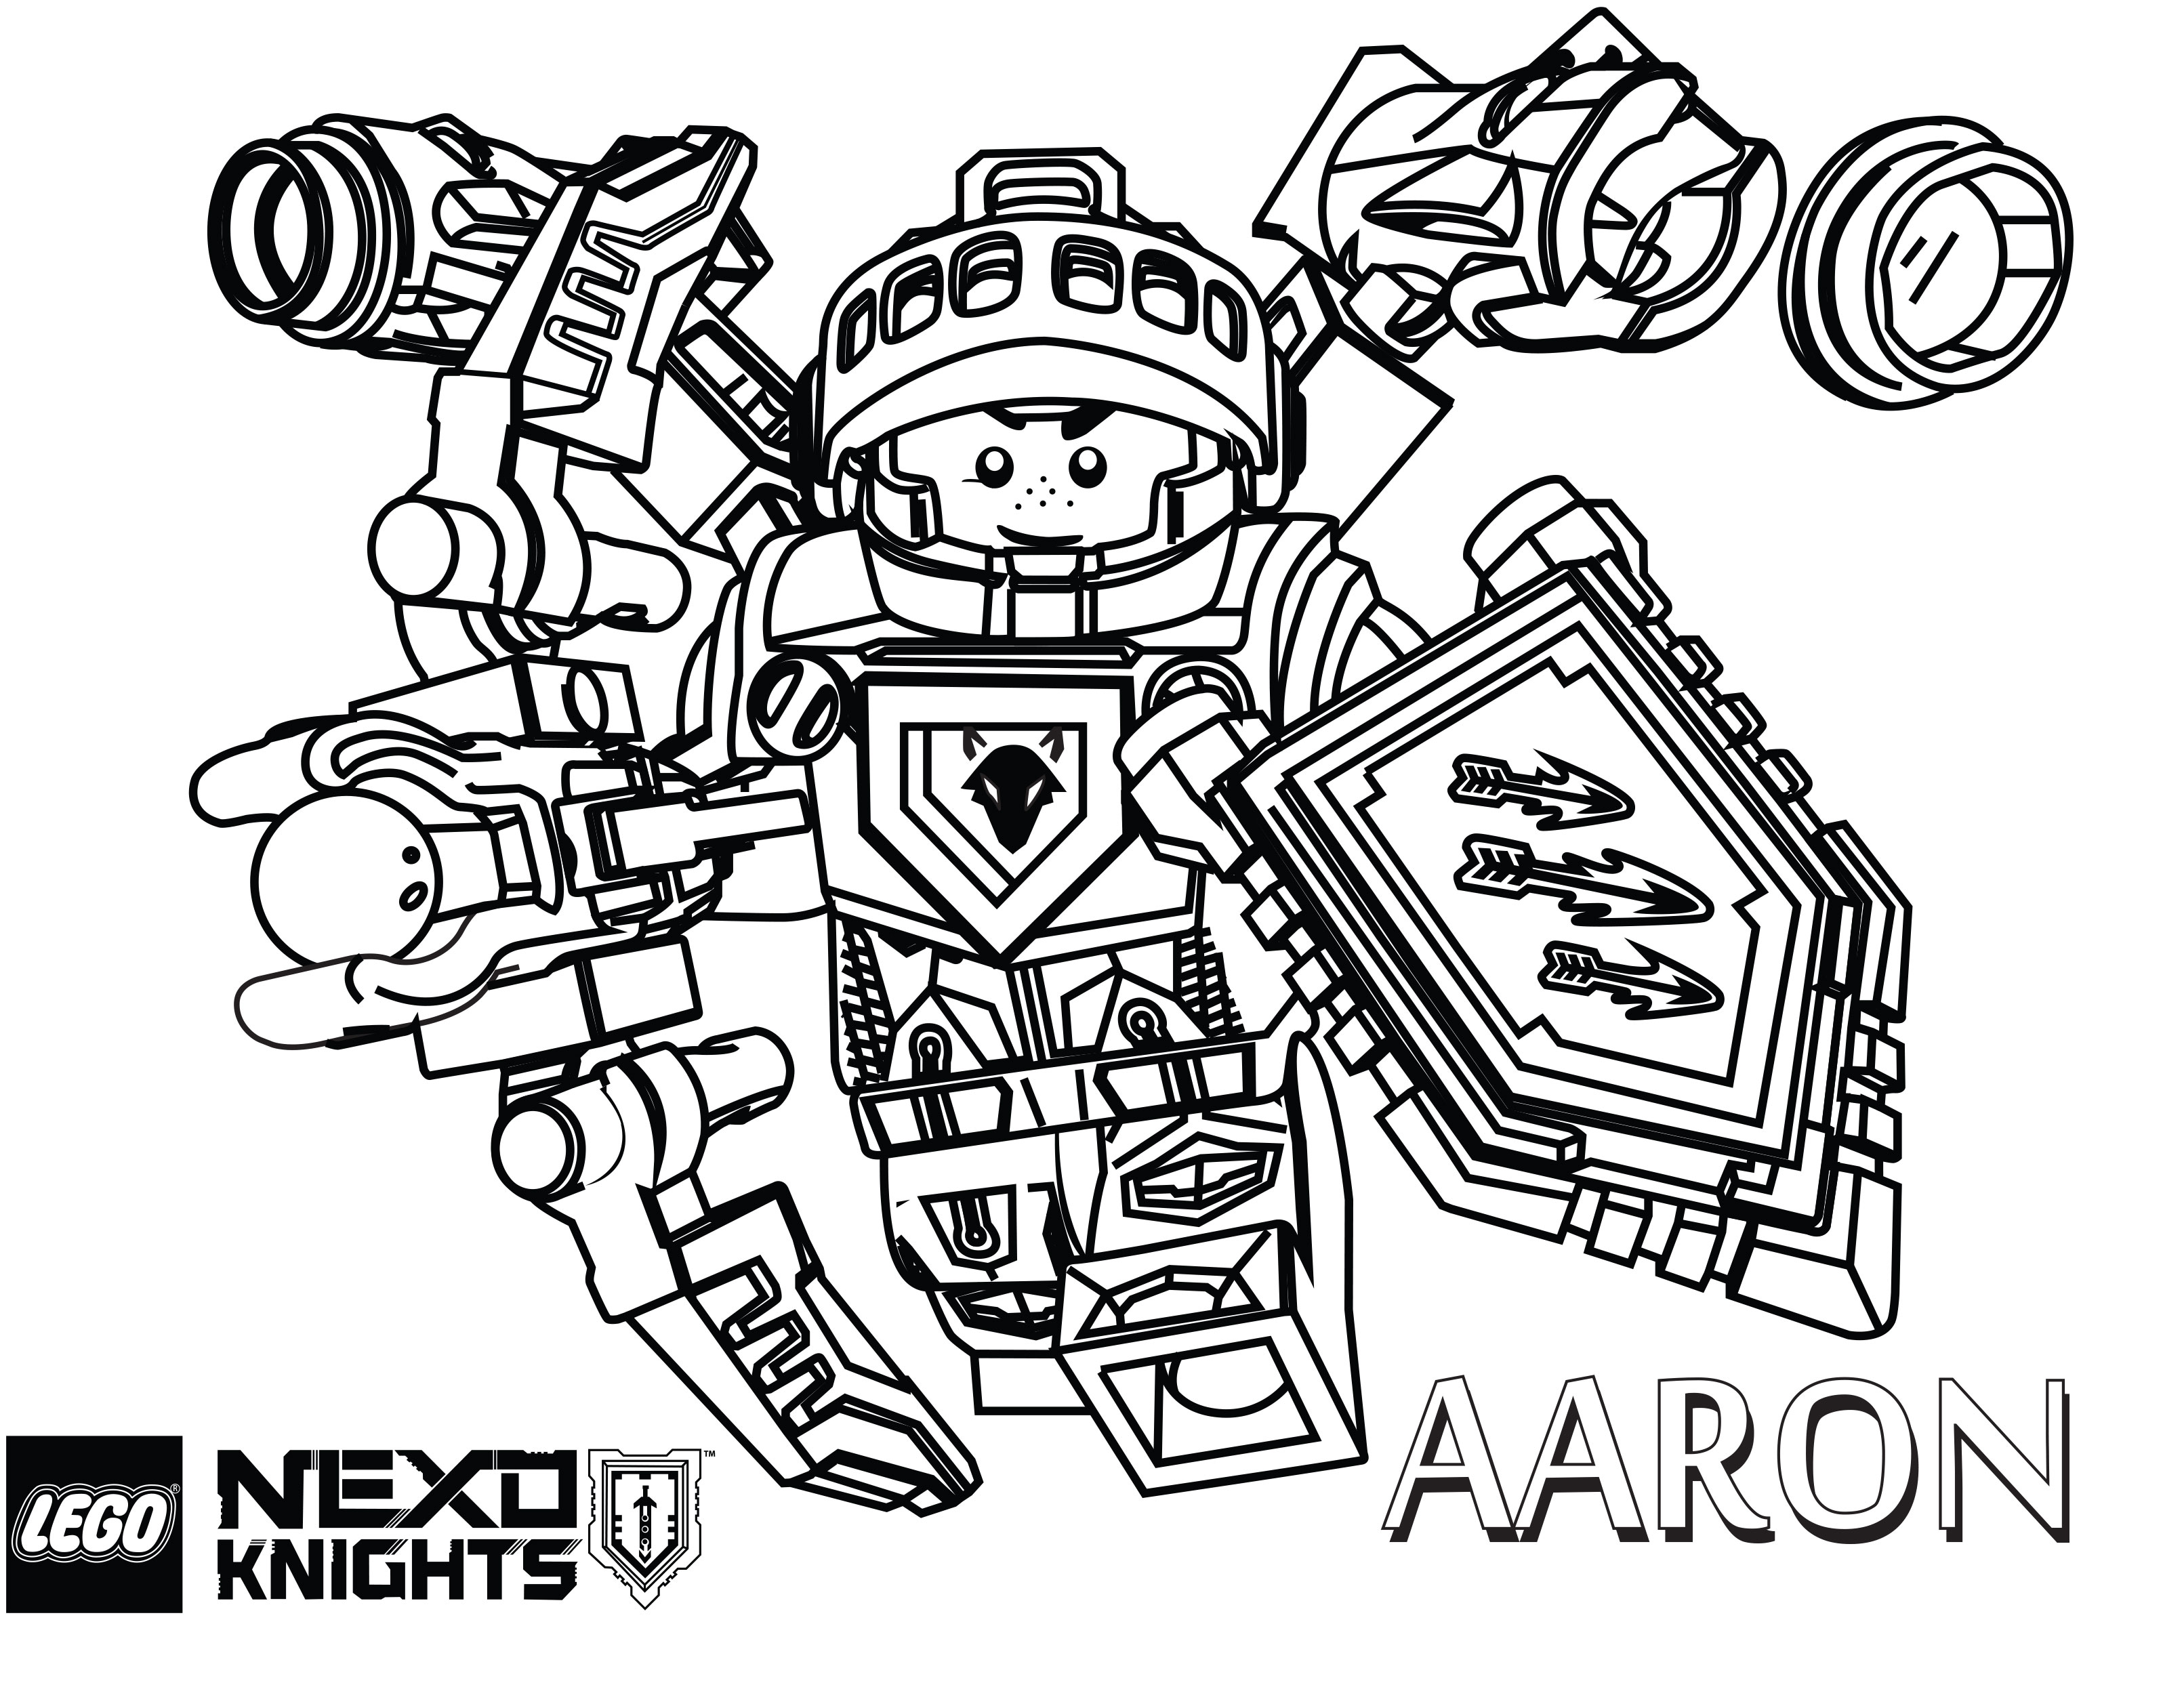 Lego Nexo Knights Coloring Pages The Brick Fan